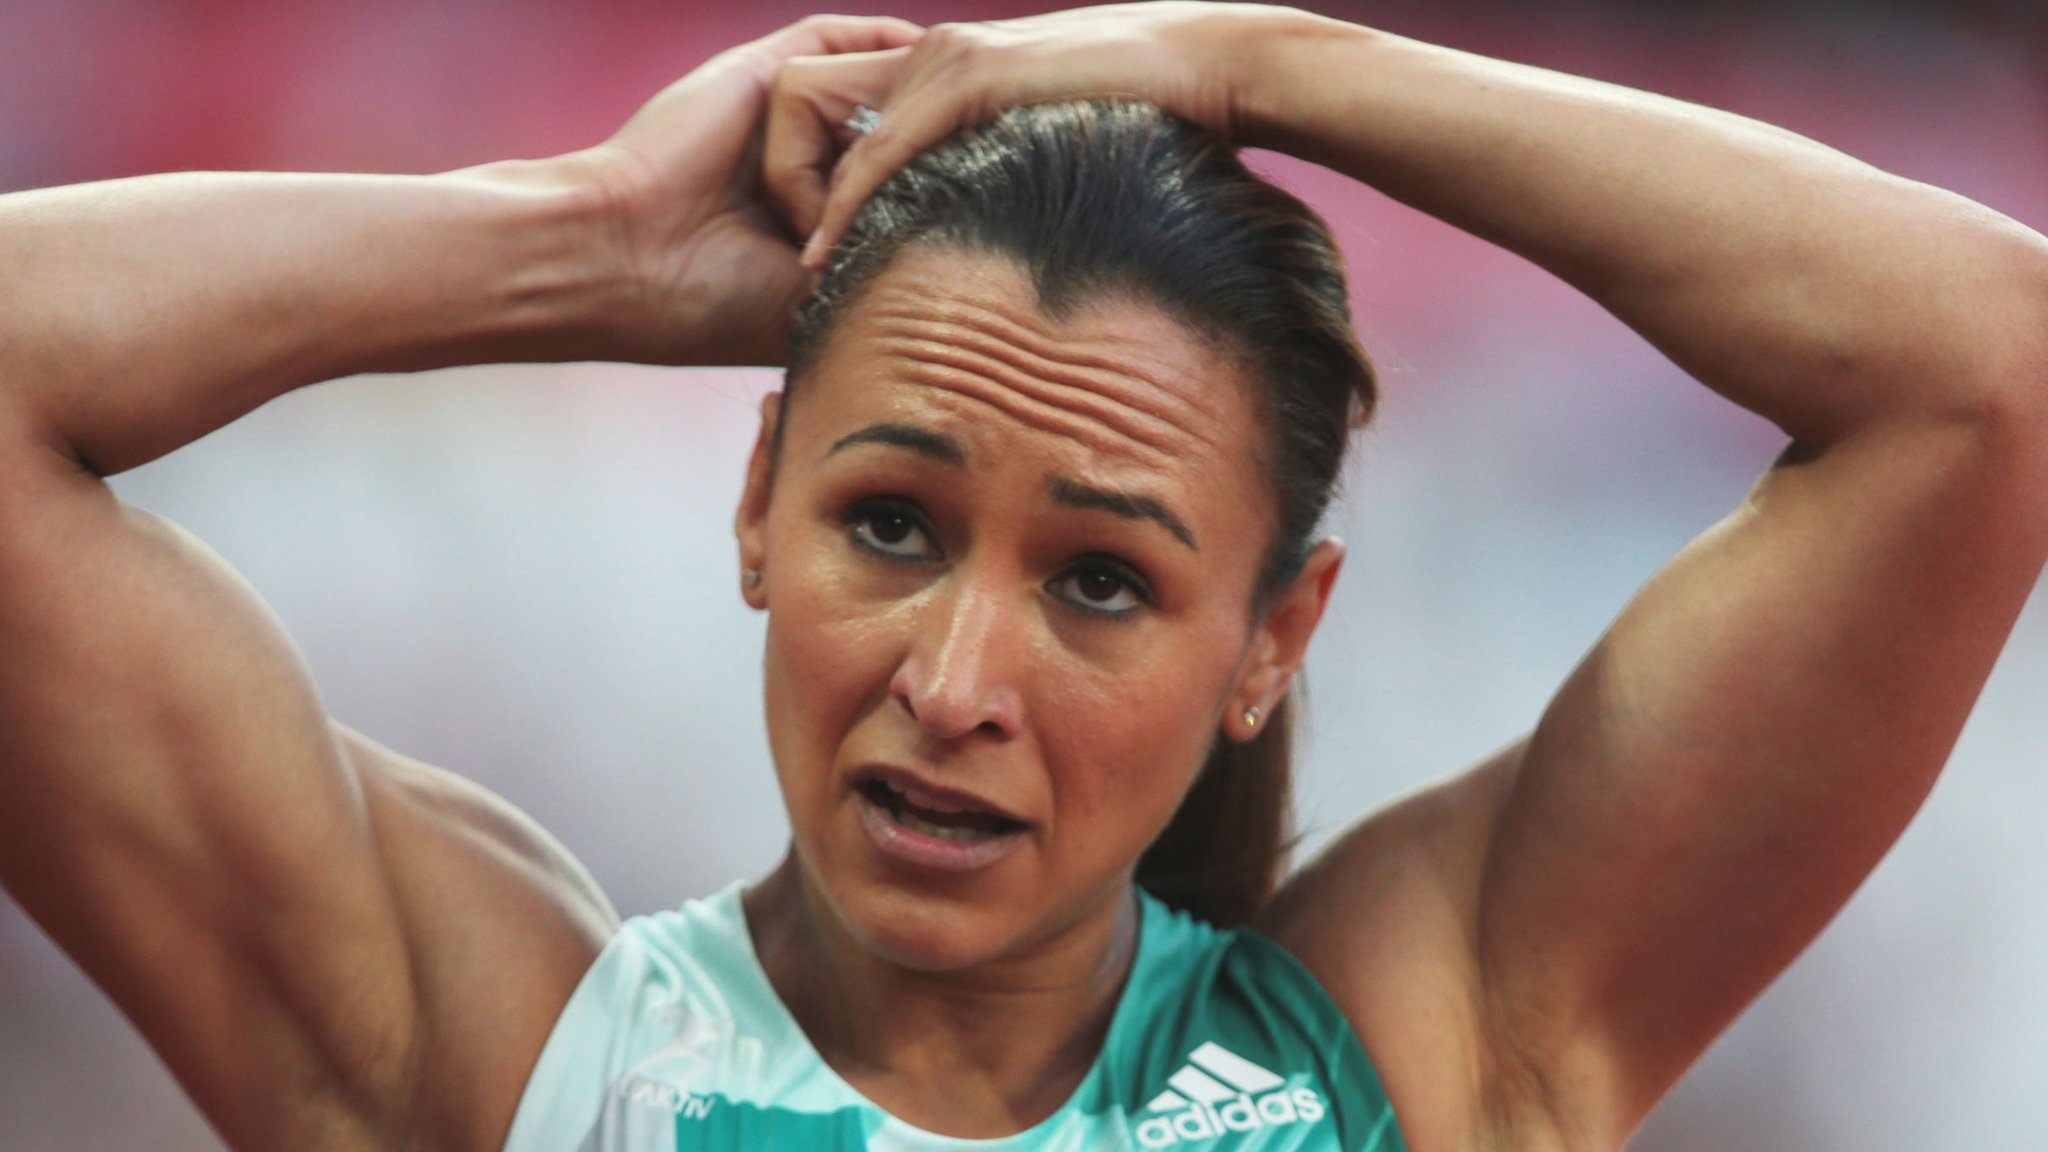 Jessica Ennis-Hill: I'm not favourite for Rio gold, says Olympic champion